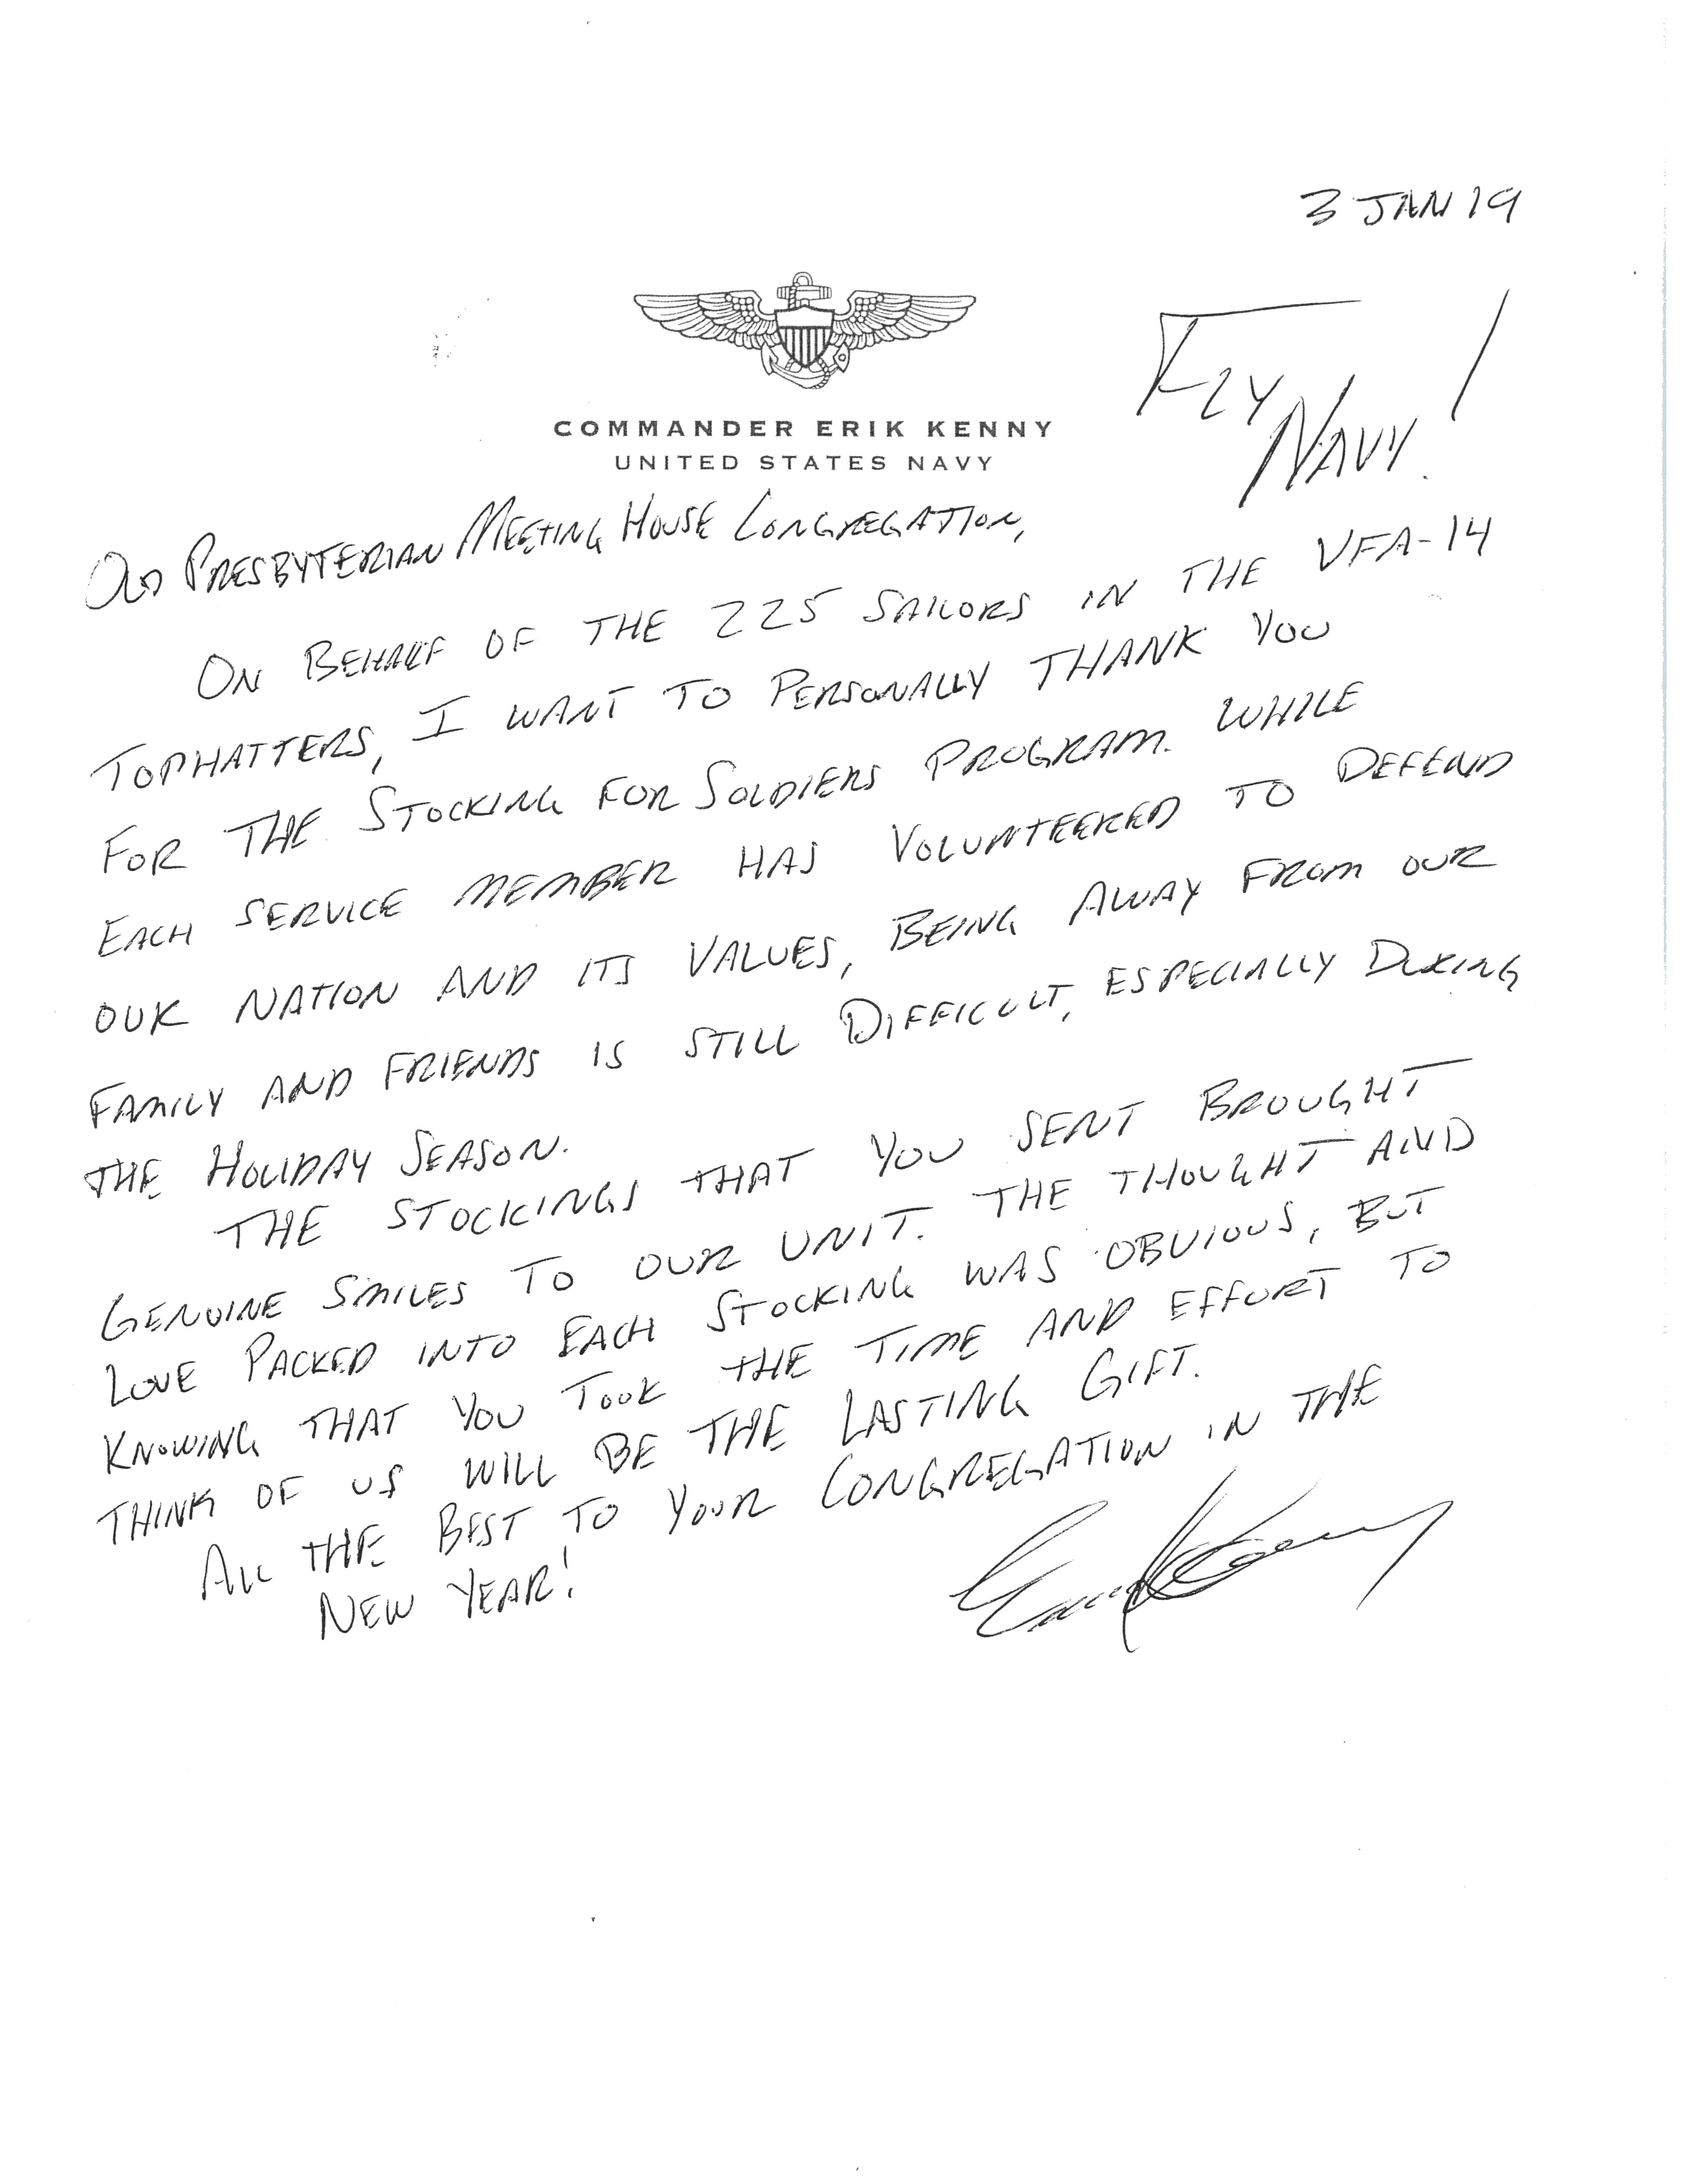 Letter from Navy Cmdr. Kenny